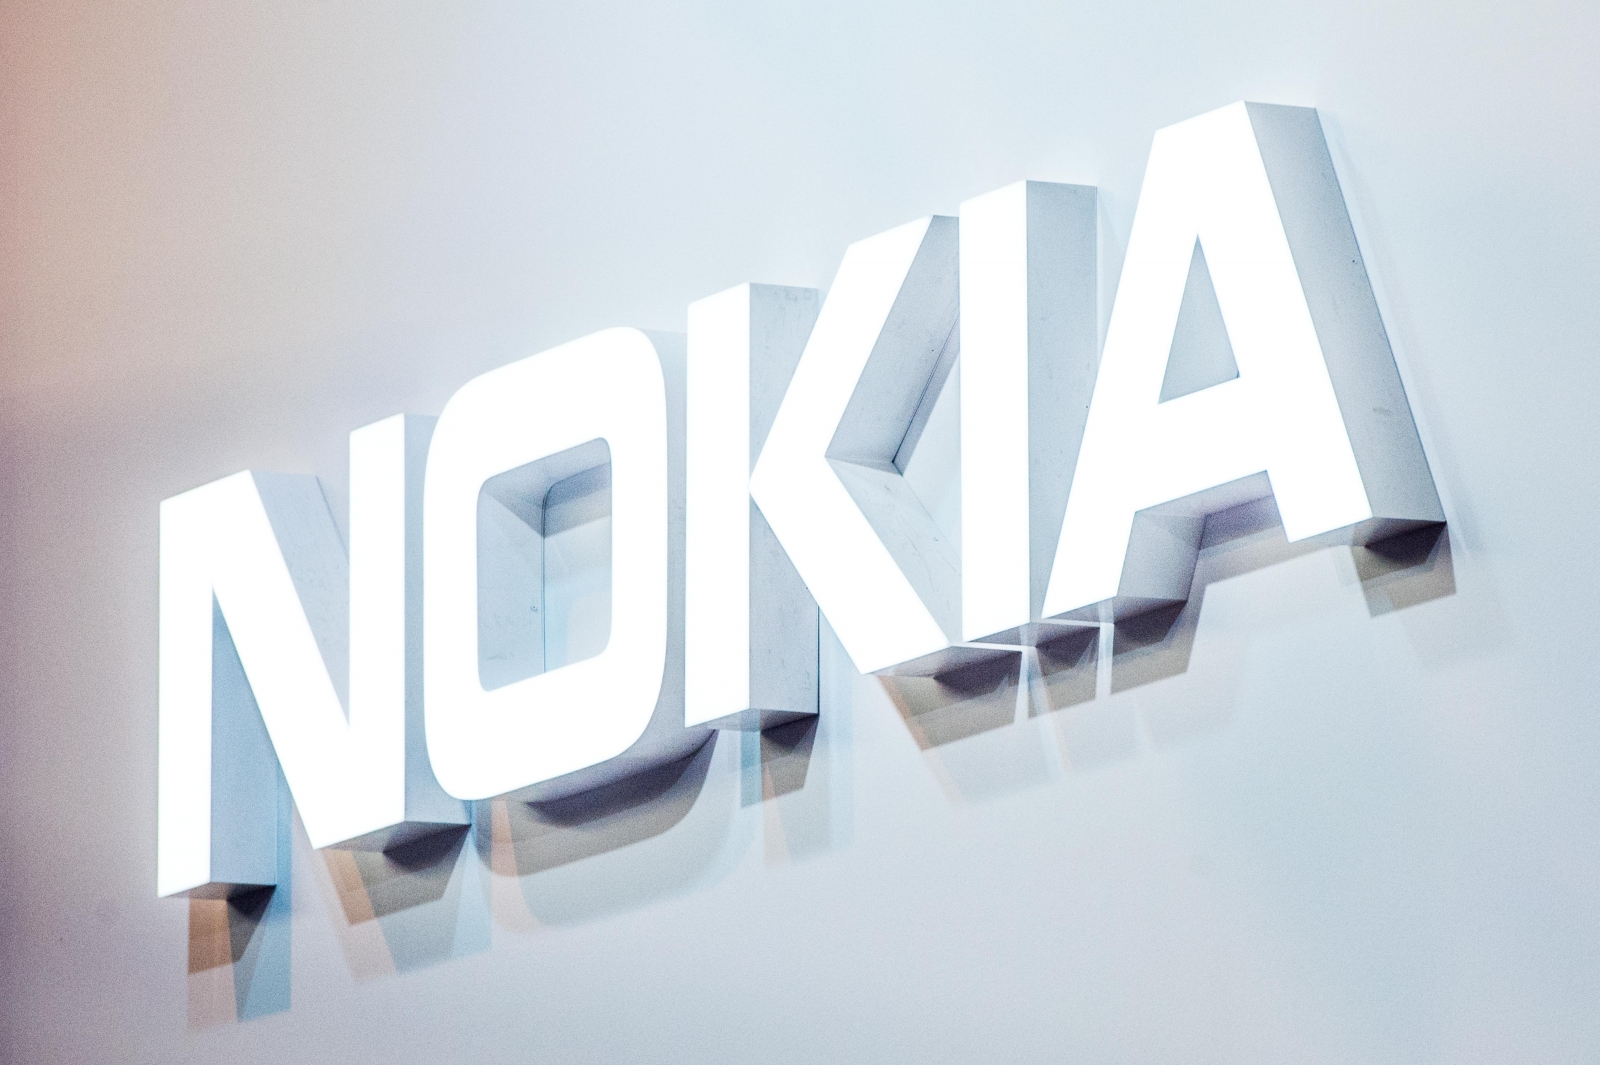 Nokia working on AI assistant Viki